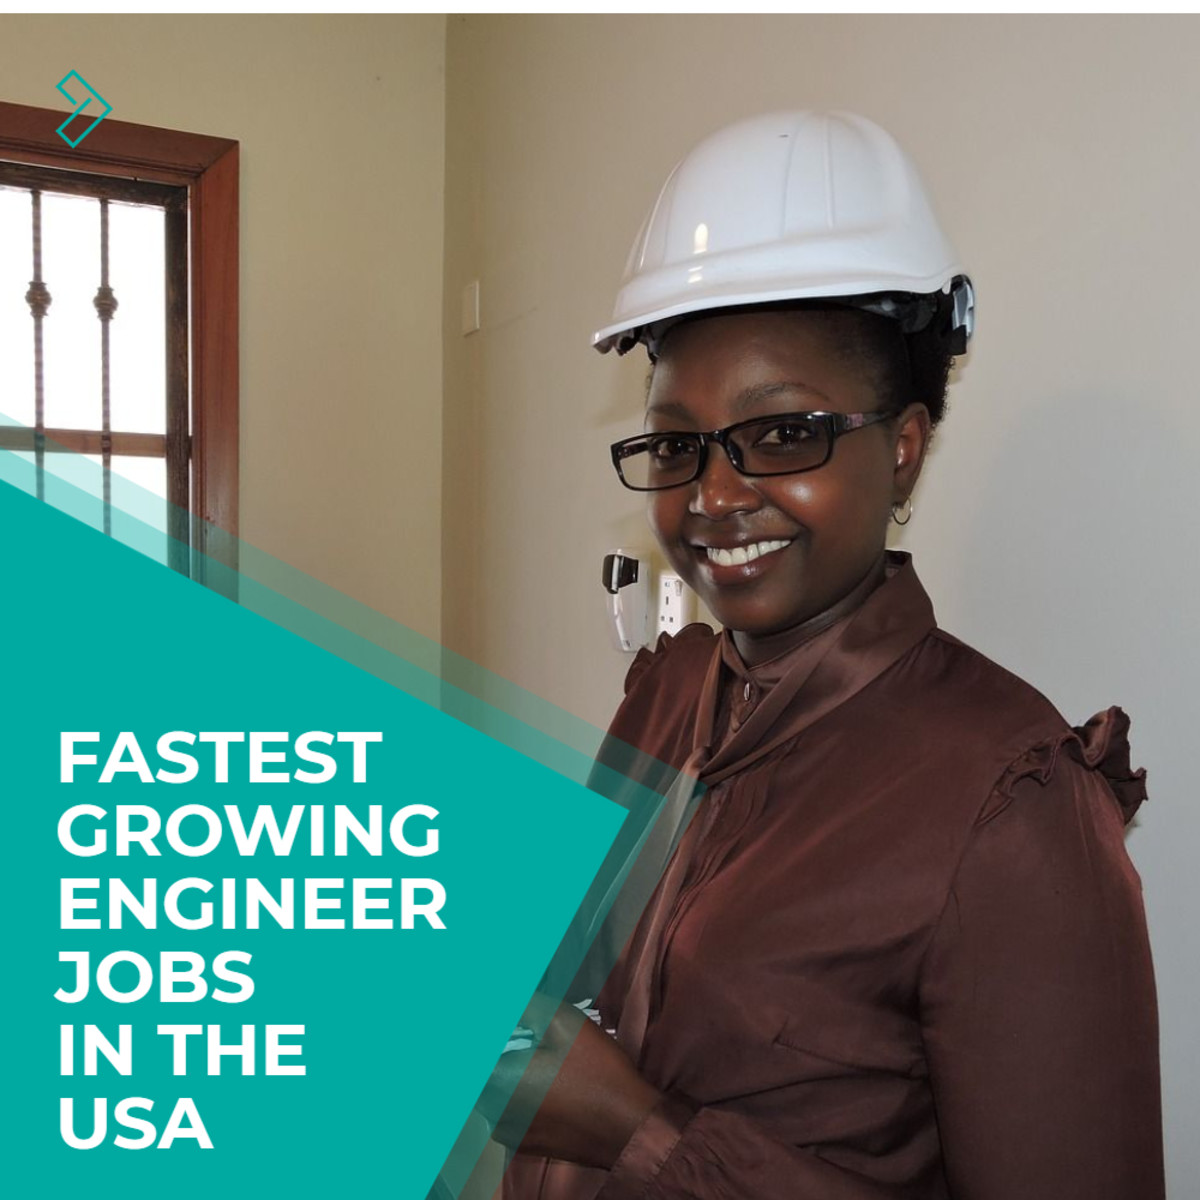 10 Fastest Growing Engineer Jobs in the USA (Until 2028)